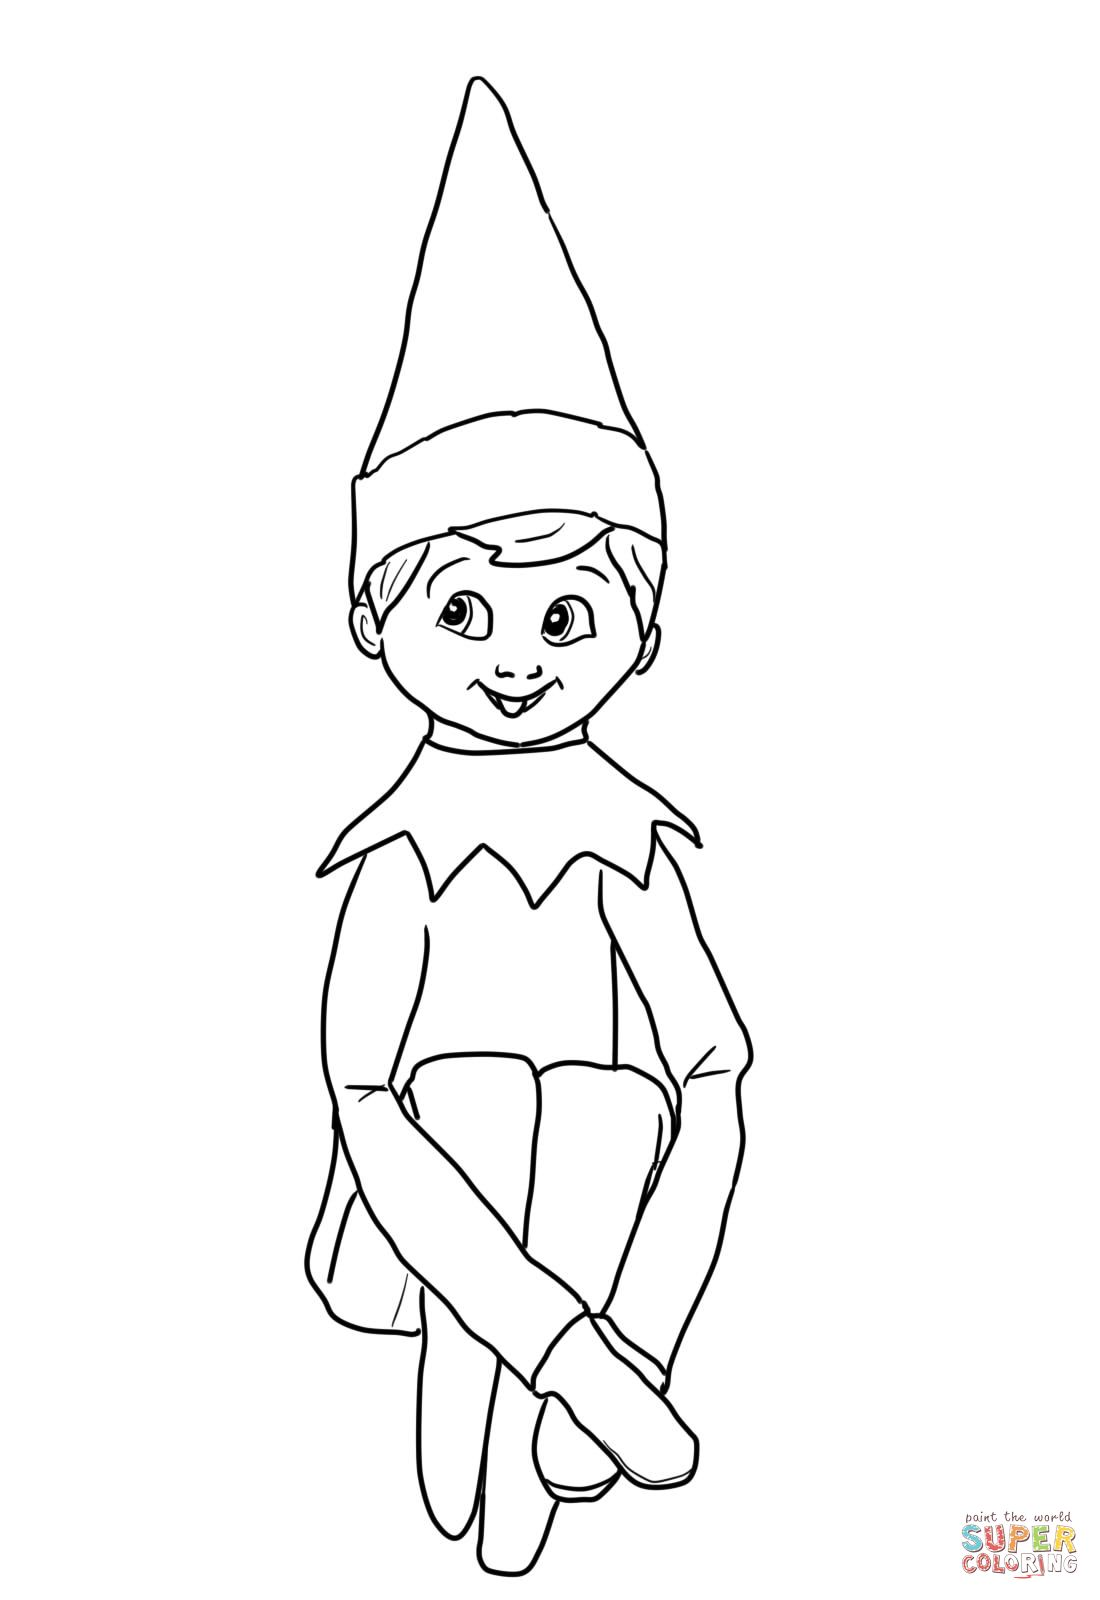 Christmas Elf on Shelf coloring page  SuperColoring.com